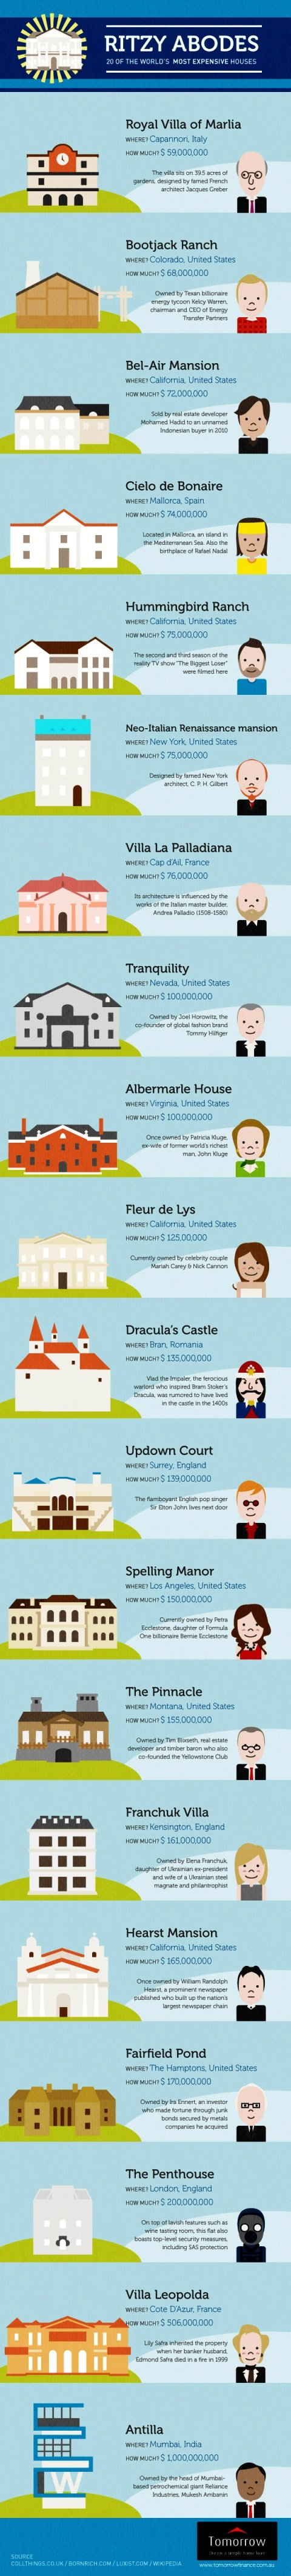 20 of the most expensive houses in the world #infographic